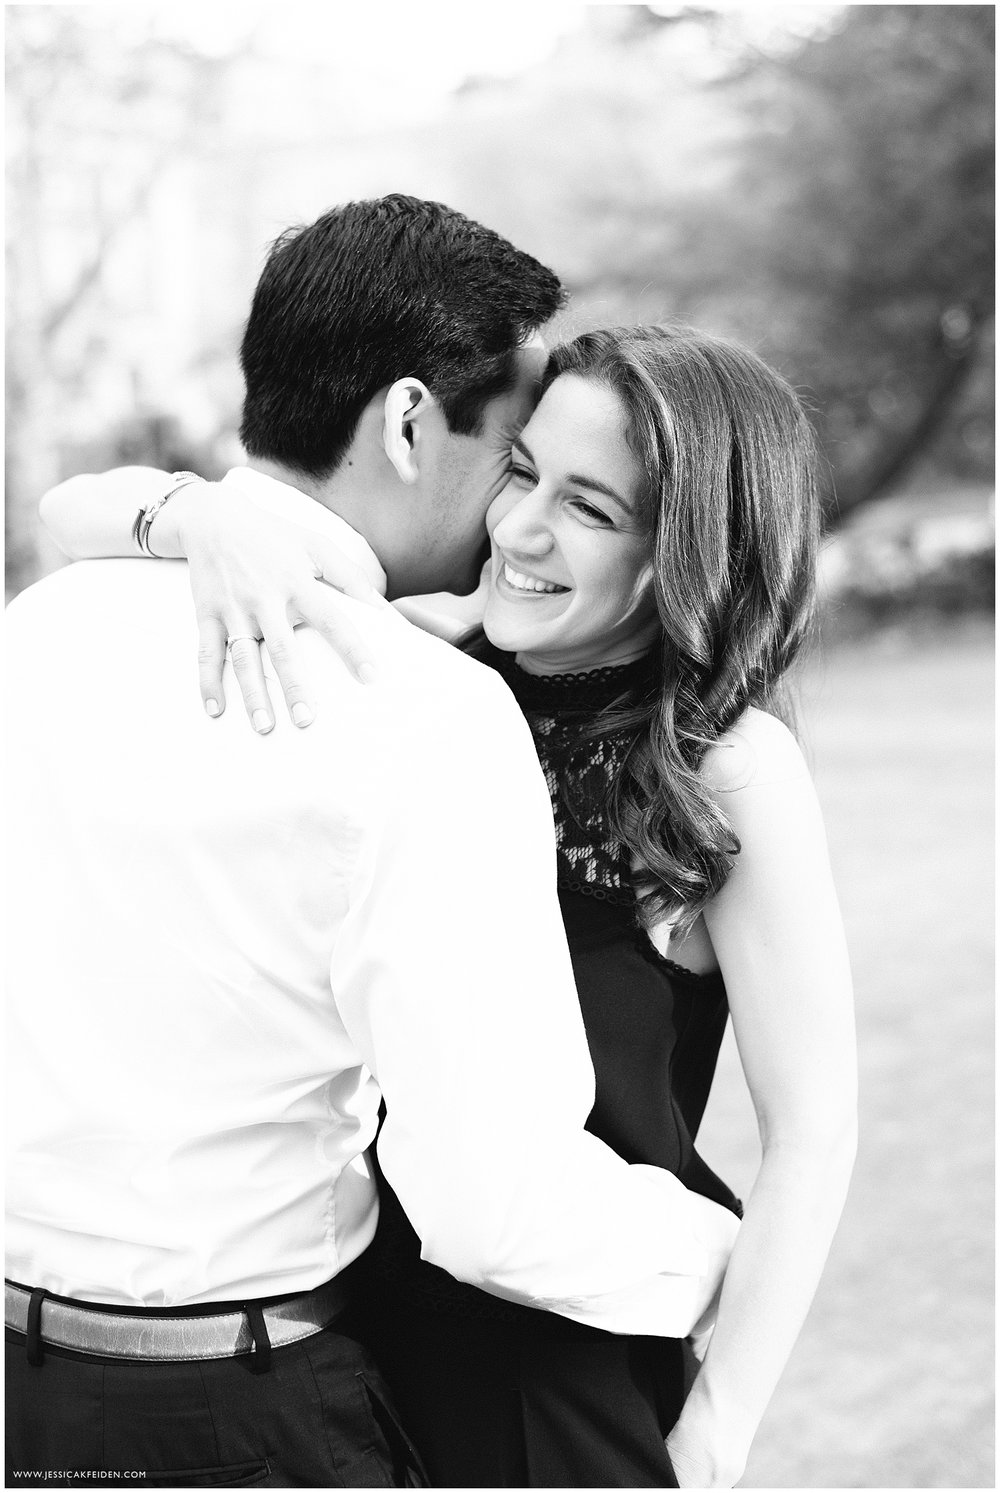 Jessica K Feiden Photography_Central Park NYC Engagement Session_0007.jpg